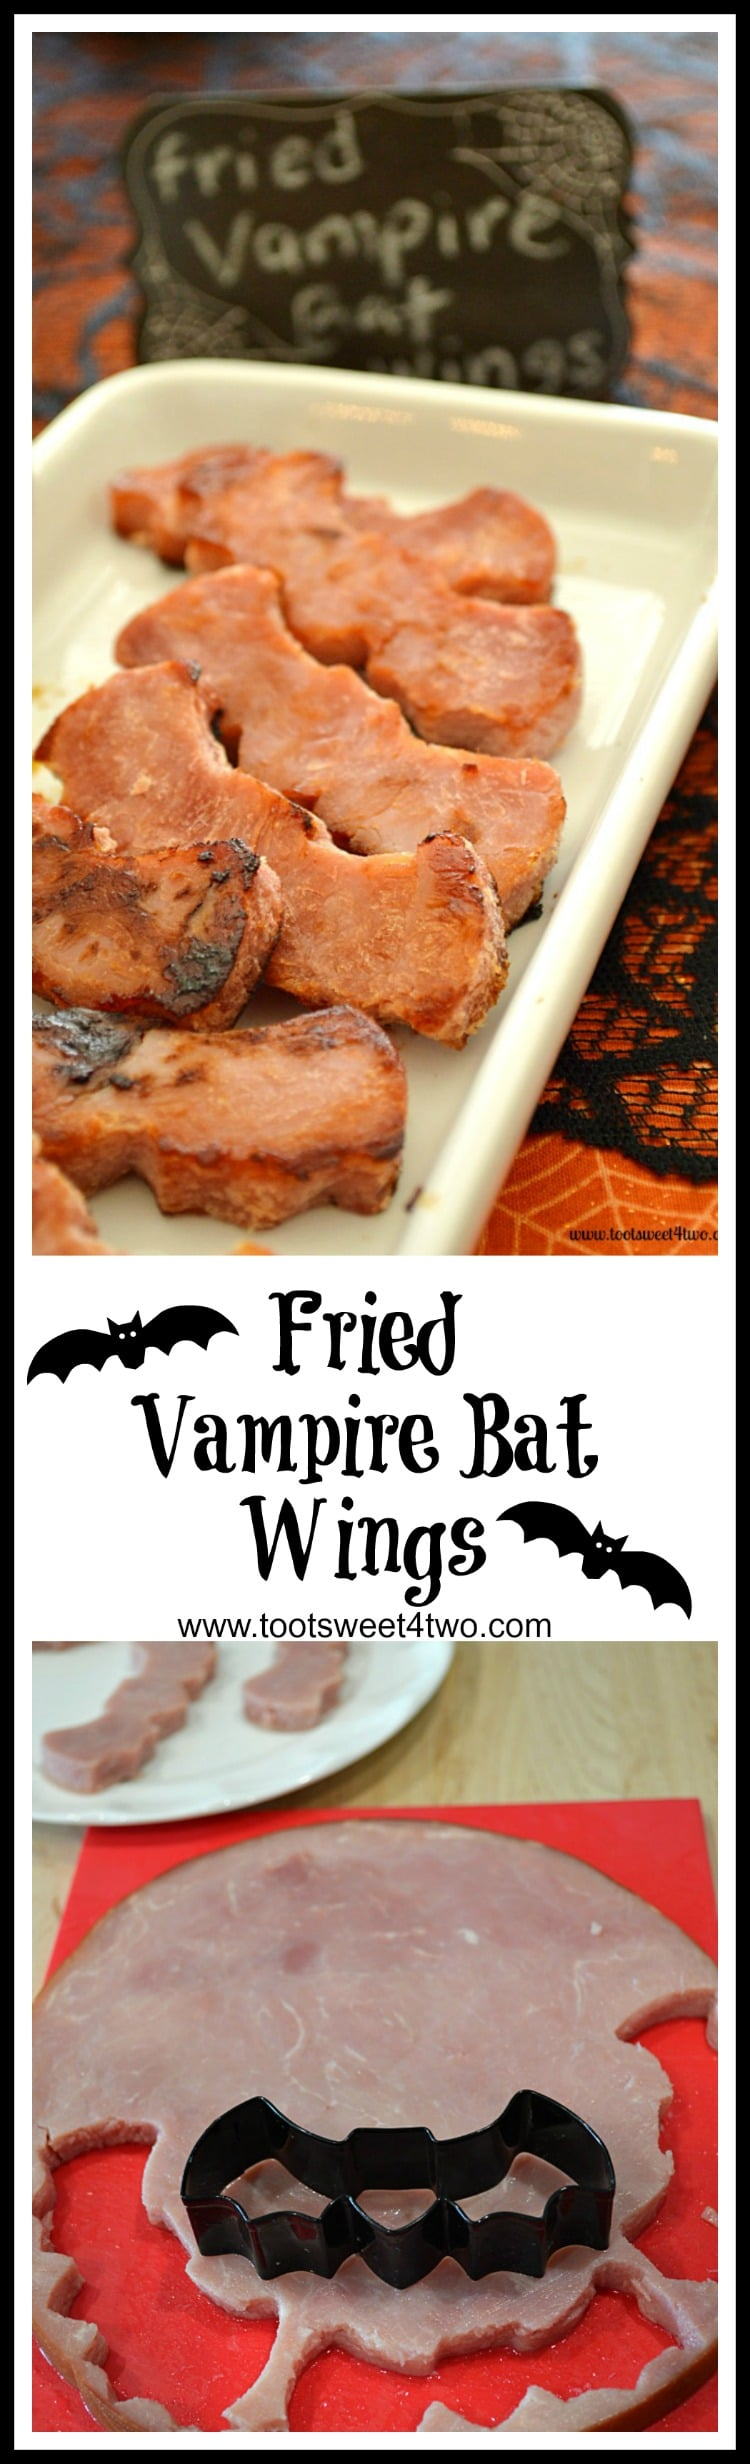 Want to make your Halloween breakfast or brunch special? Or, are you having a Halloween party? This Fried Vampire Bat Wings recipe is a fun and easy technique to make your Halloween breakfast, brunch or party special! Using thick slices of ham and a bat-shaped cookie cutter, make a batch for your next party. Kids love them and they'll wolf them down fast! | www.tootsweet4two.com